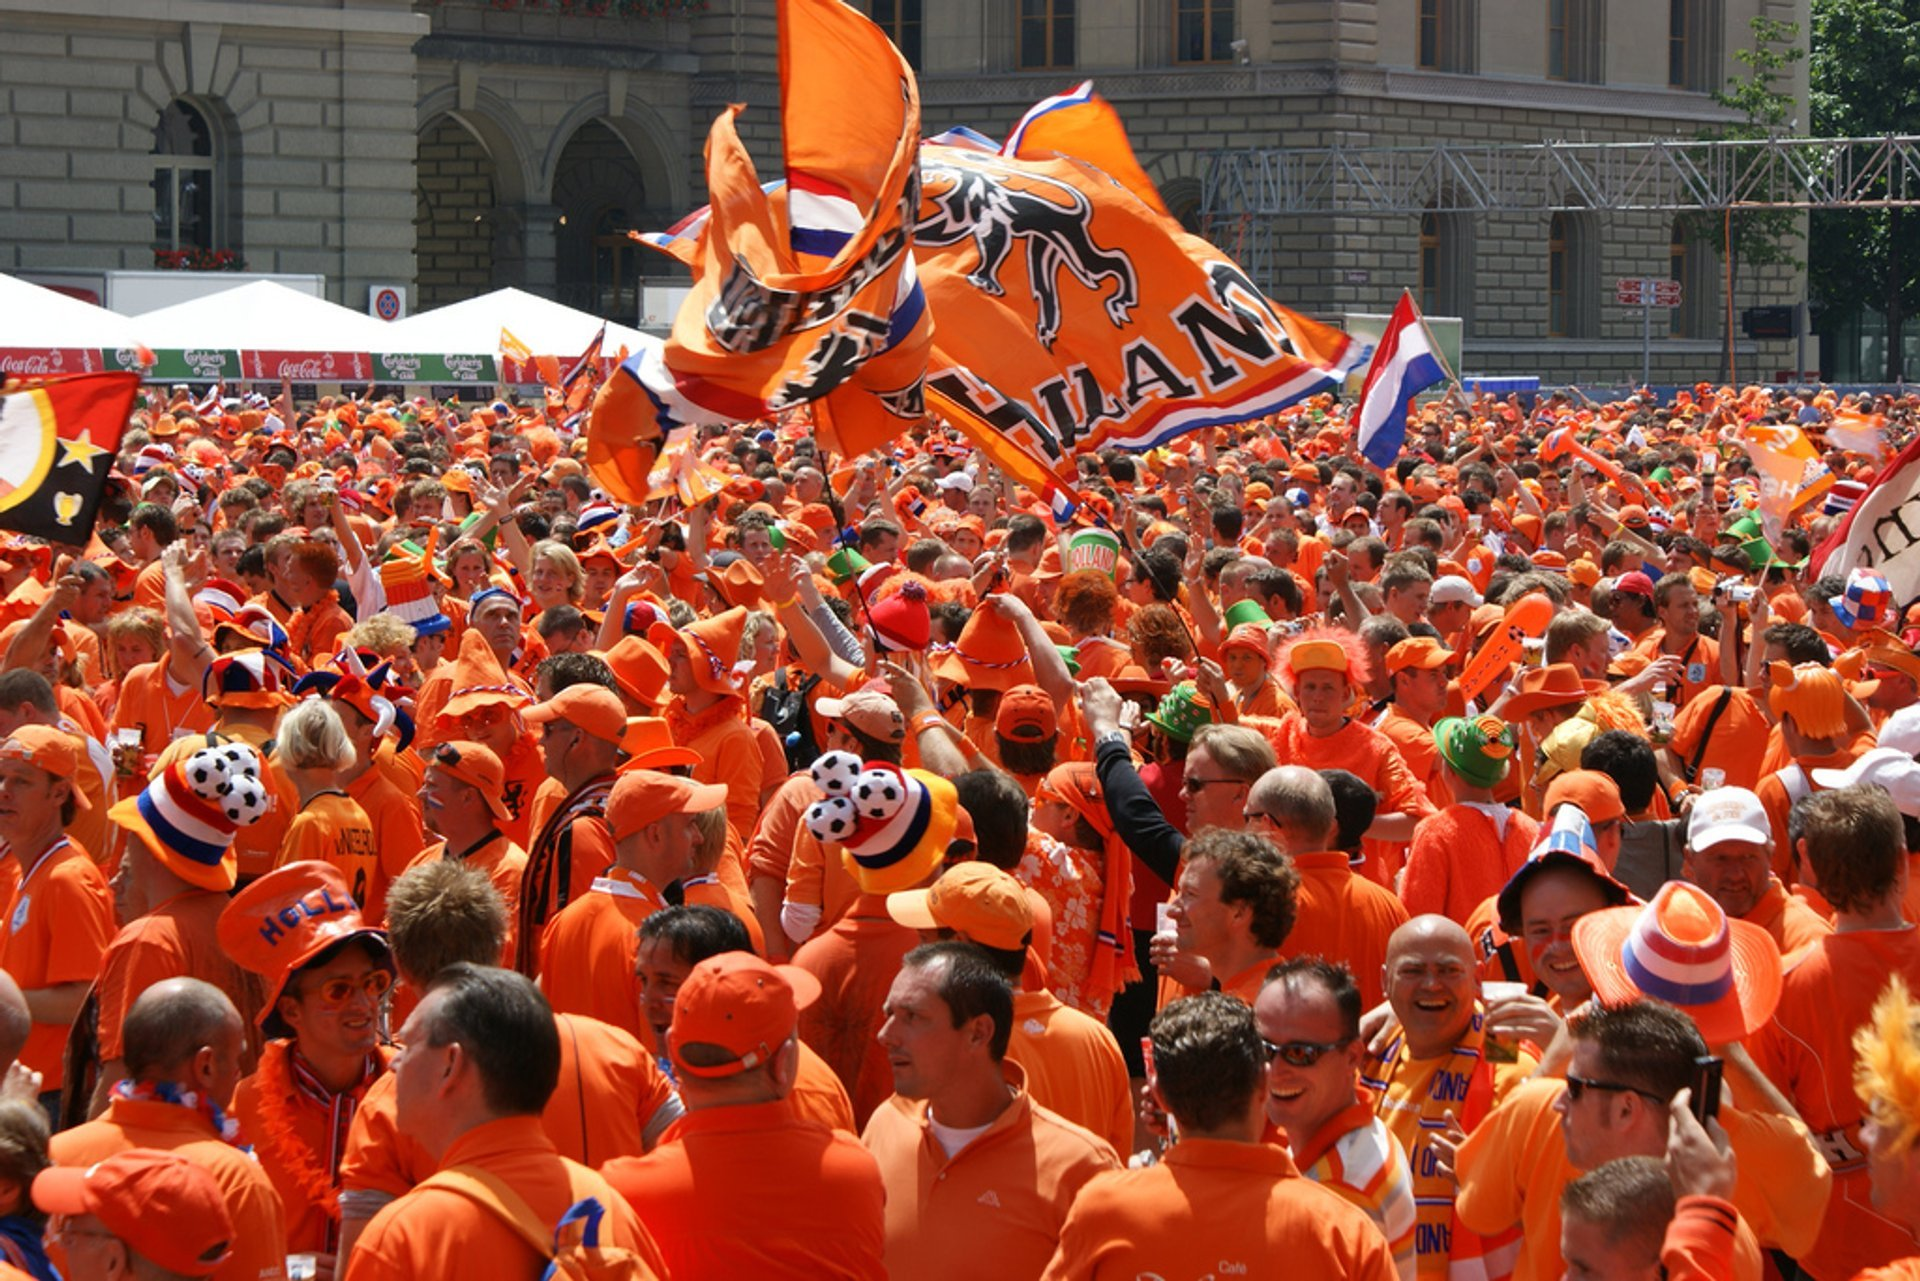 Football Orange Fever in The Netherlands 2020 - Best Time